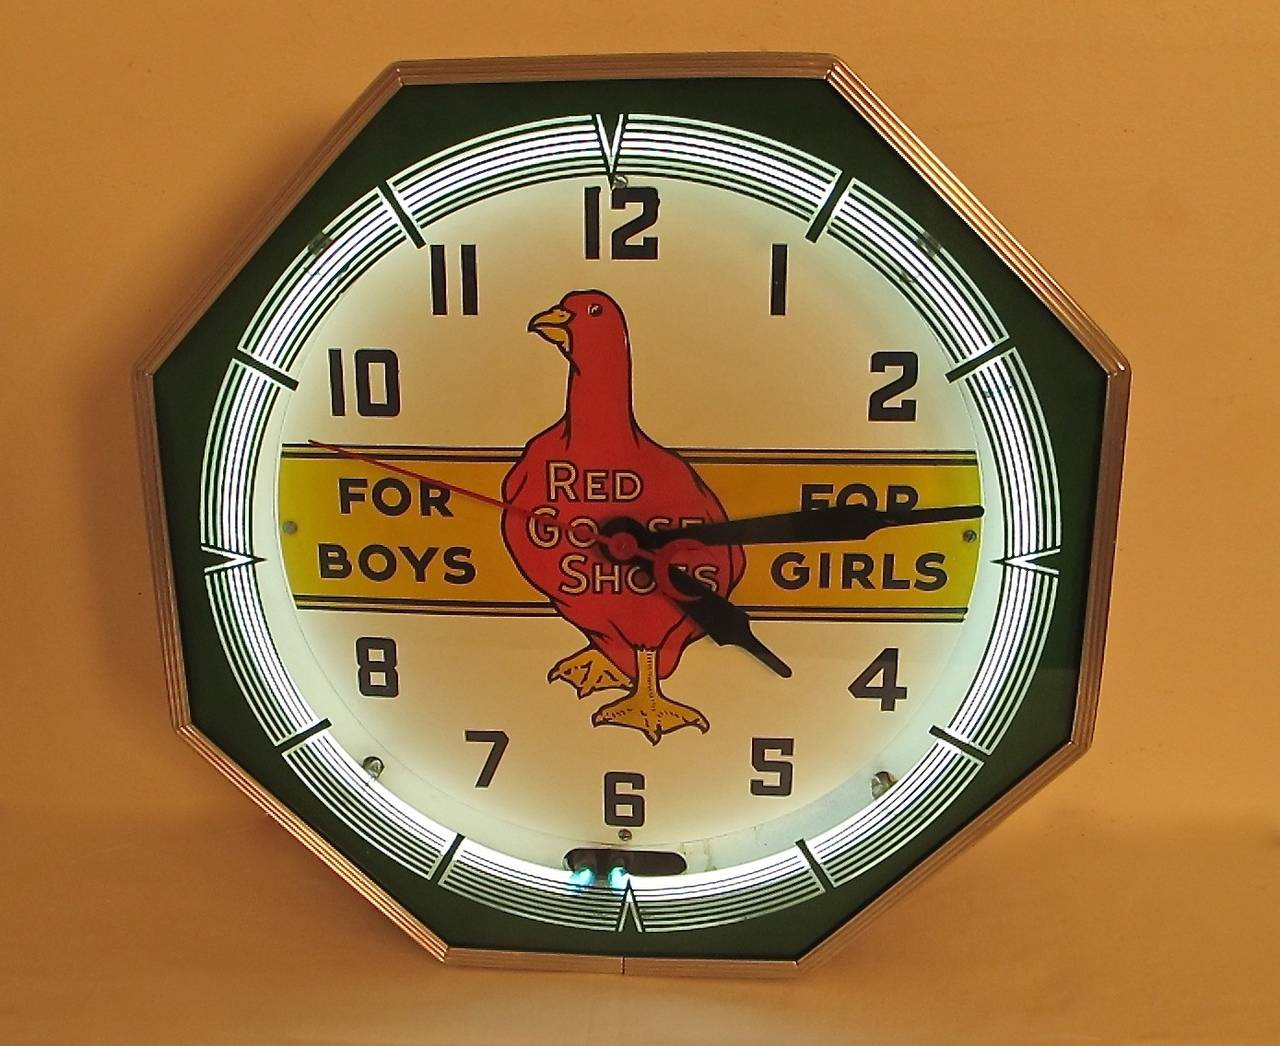 Vintage Quot Red Goose Shoes Quot Neon Clock At 1stdibs